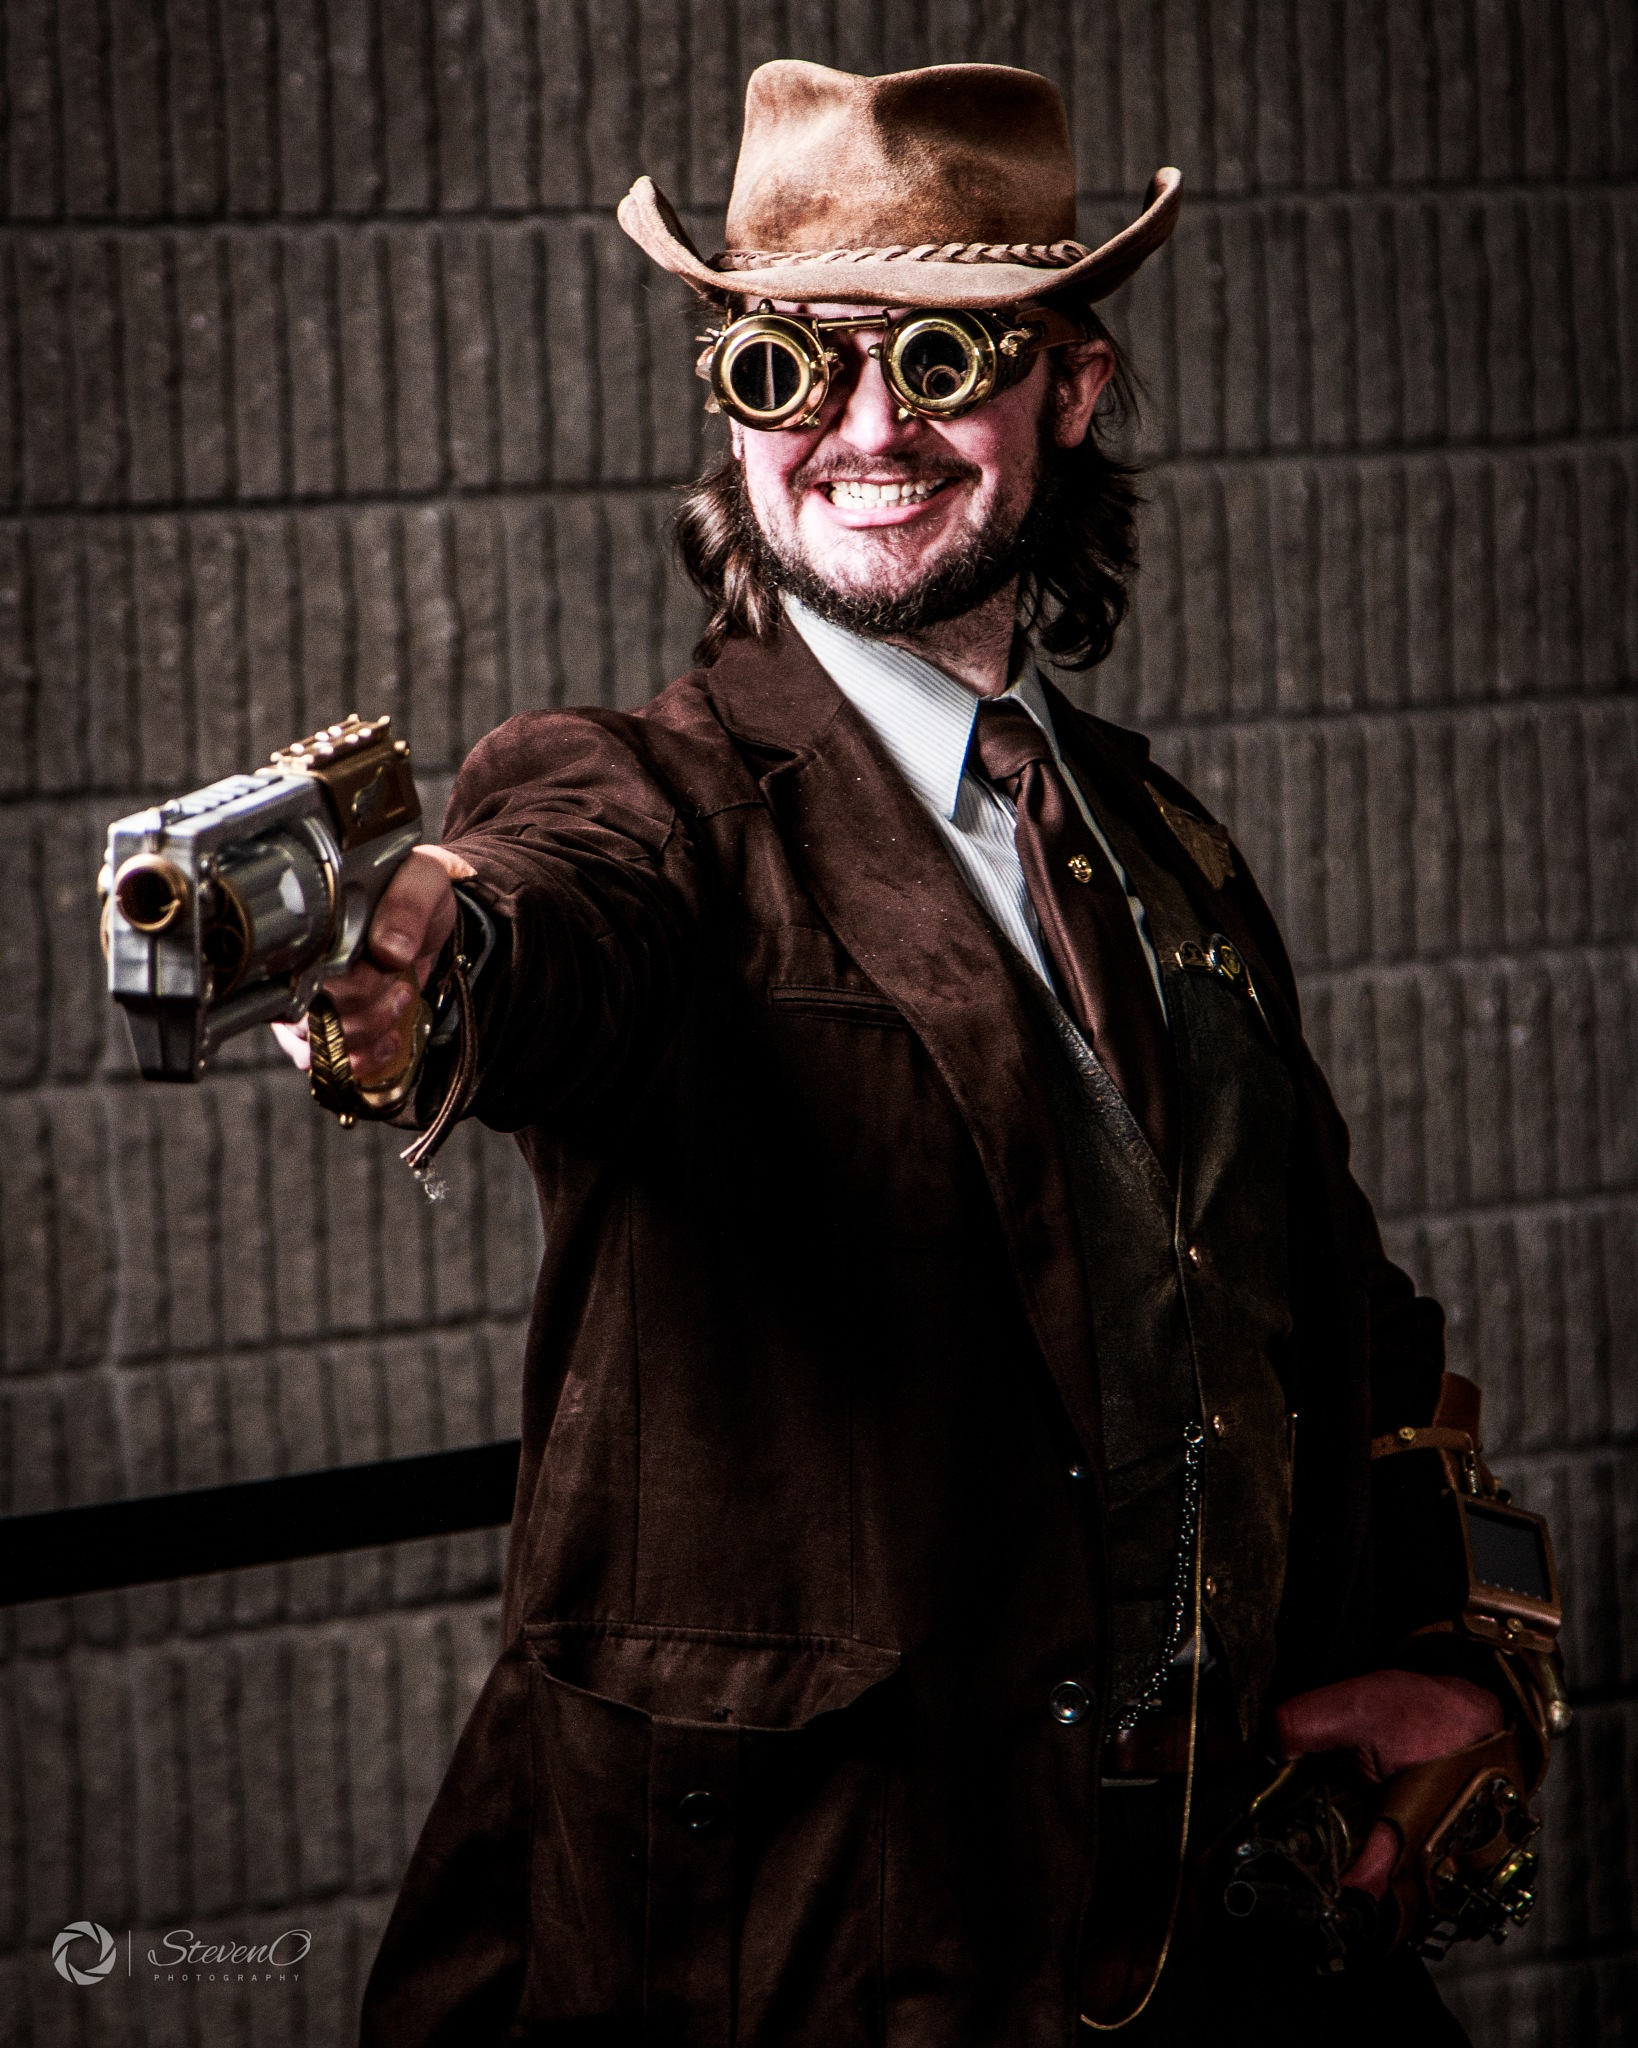 Steampunk by stevenophotography